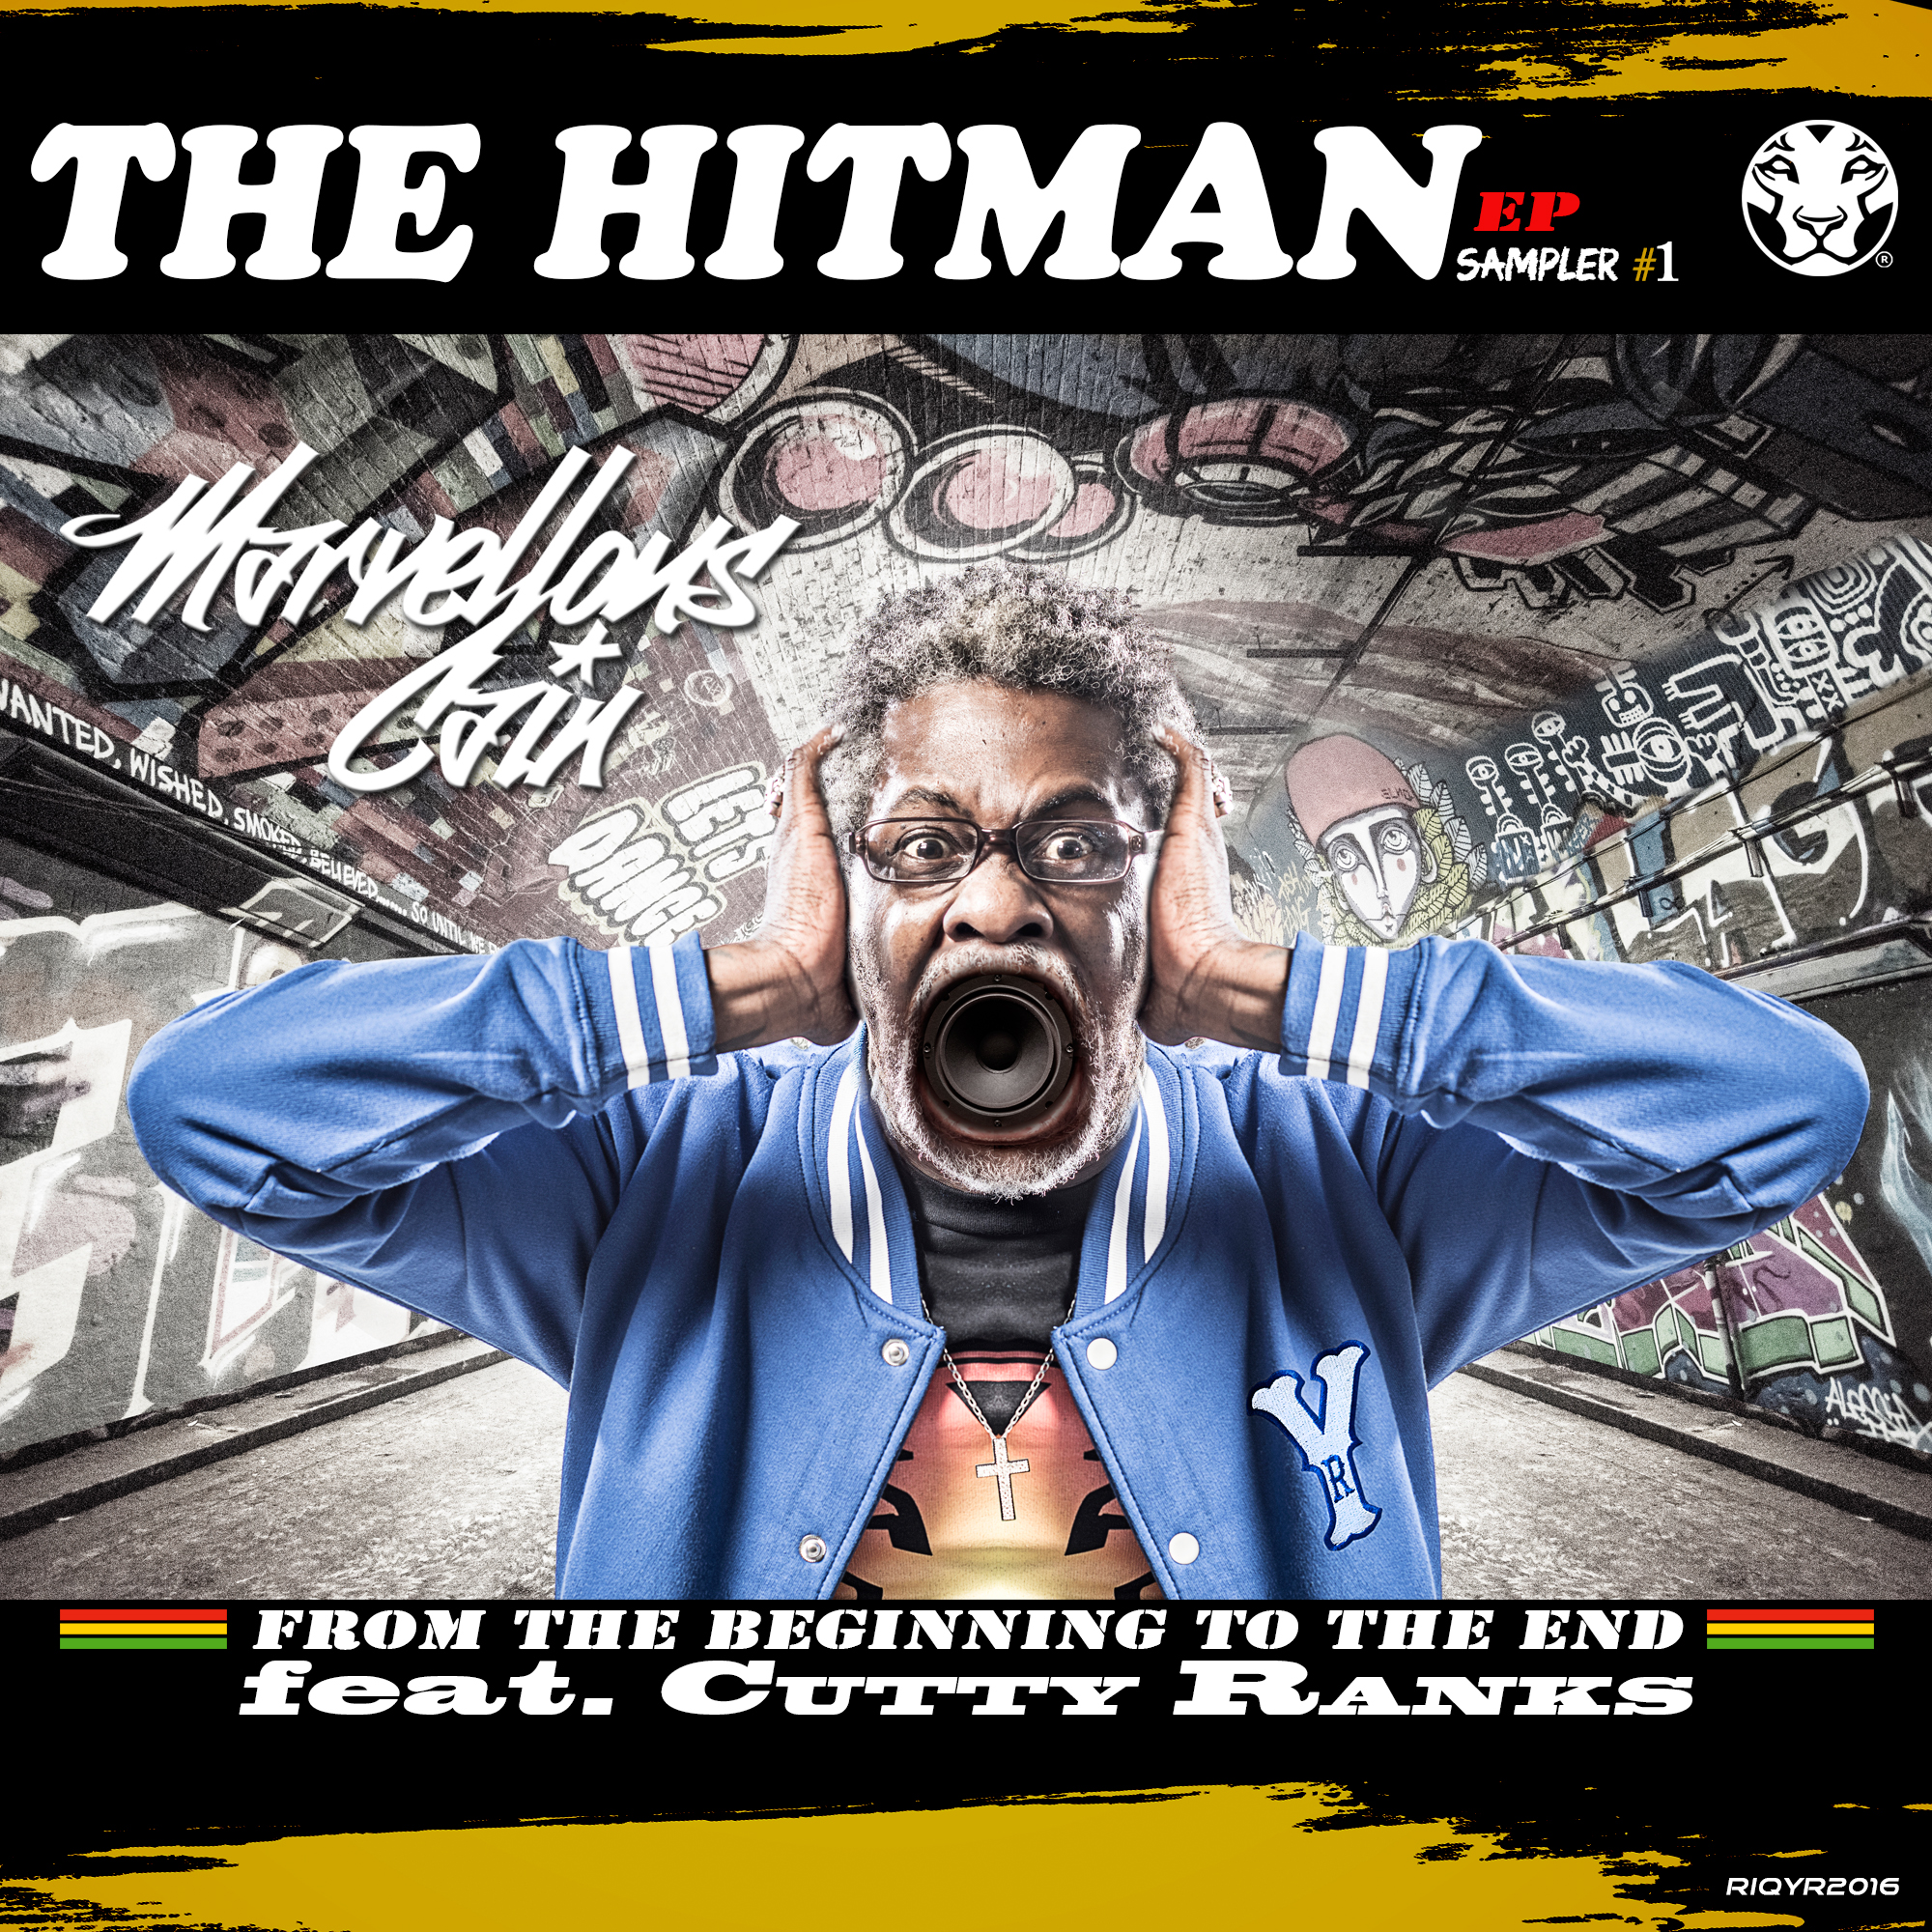 marvellous-cain-the-hitman-ep-2016-sampler-1